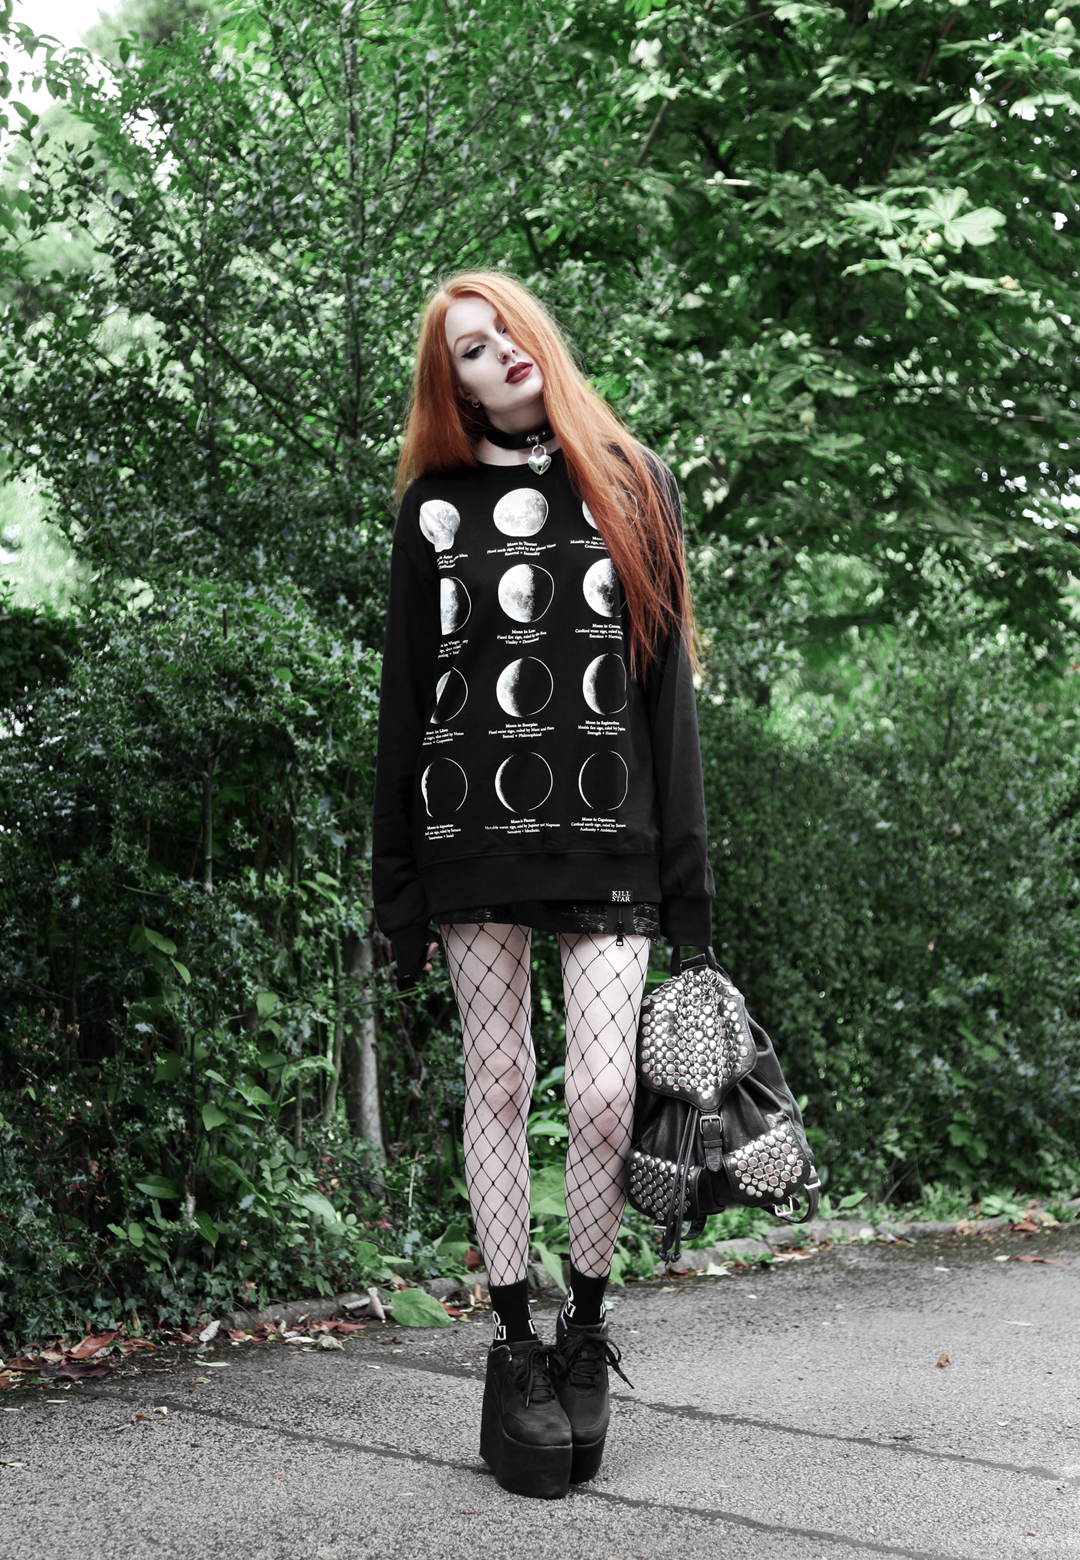 Olivia Emily wears Killstar Emily Heart Locket Choker, Killstar Lunar Moon Phases Sweater, Edun Patent Skirt, Asos Fishnet tights & YRU Qozmo platform shoes